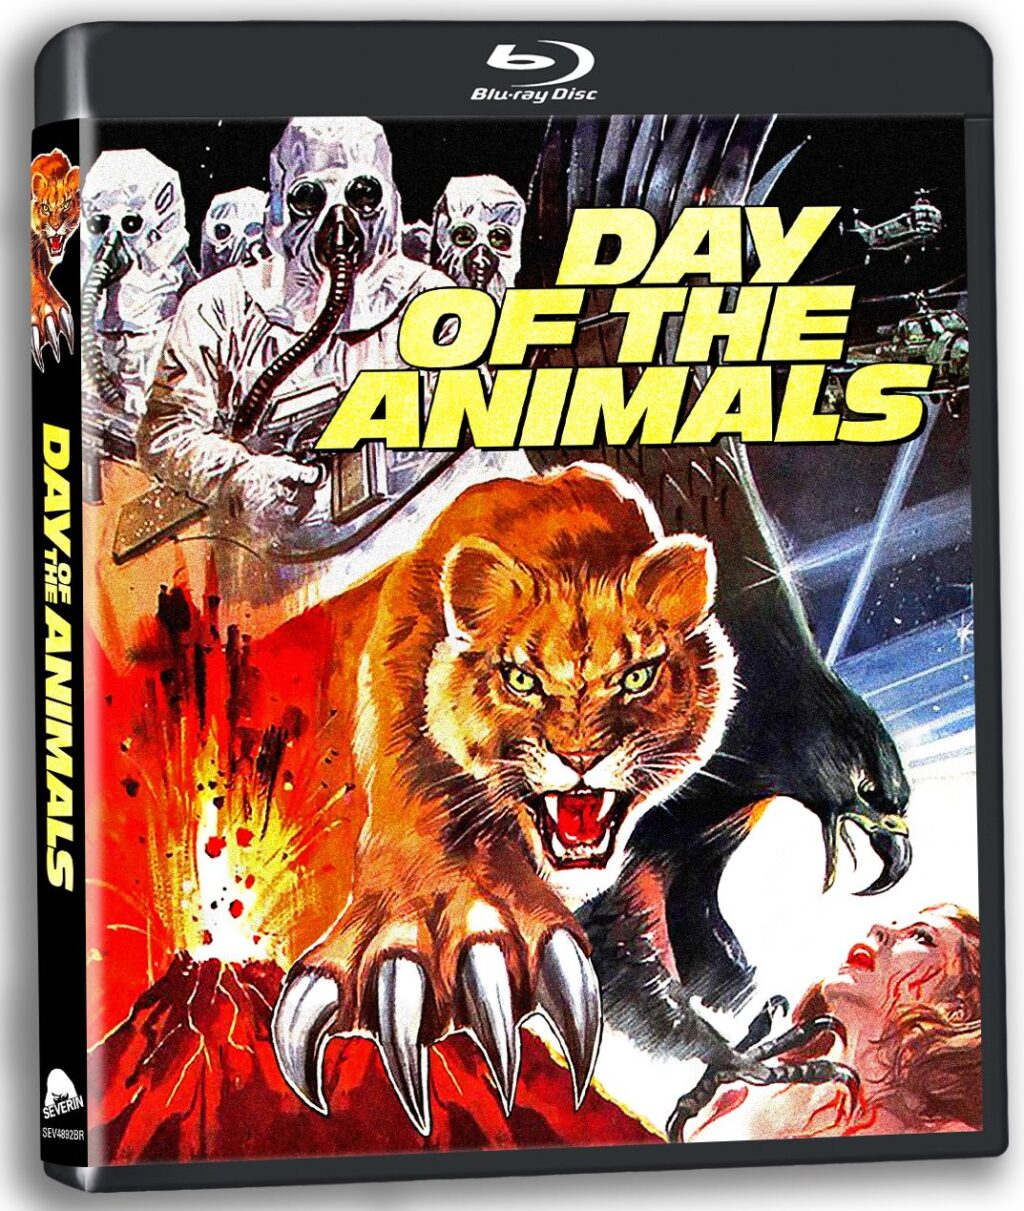 day of the animals blu 1024x1211 - DAY OF THE ANIMALS Blu-ray Review - See Leslie Nielsen Fight a Bear